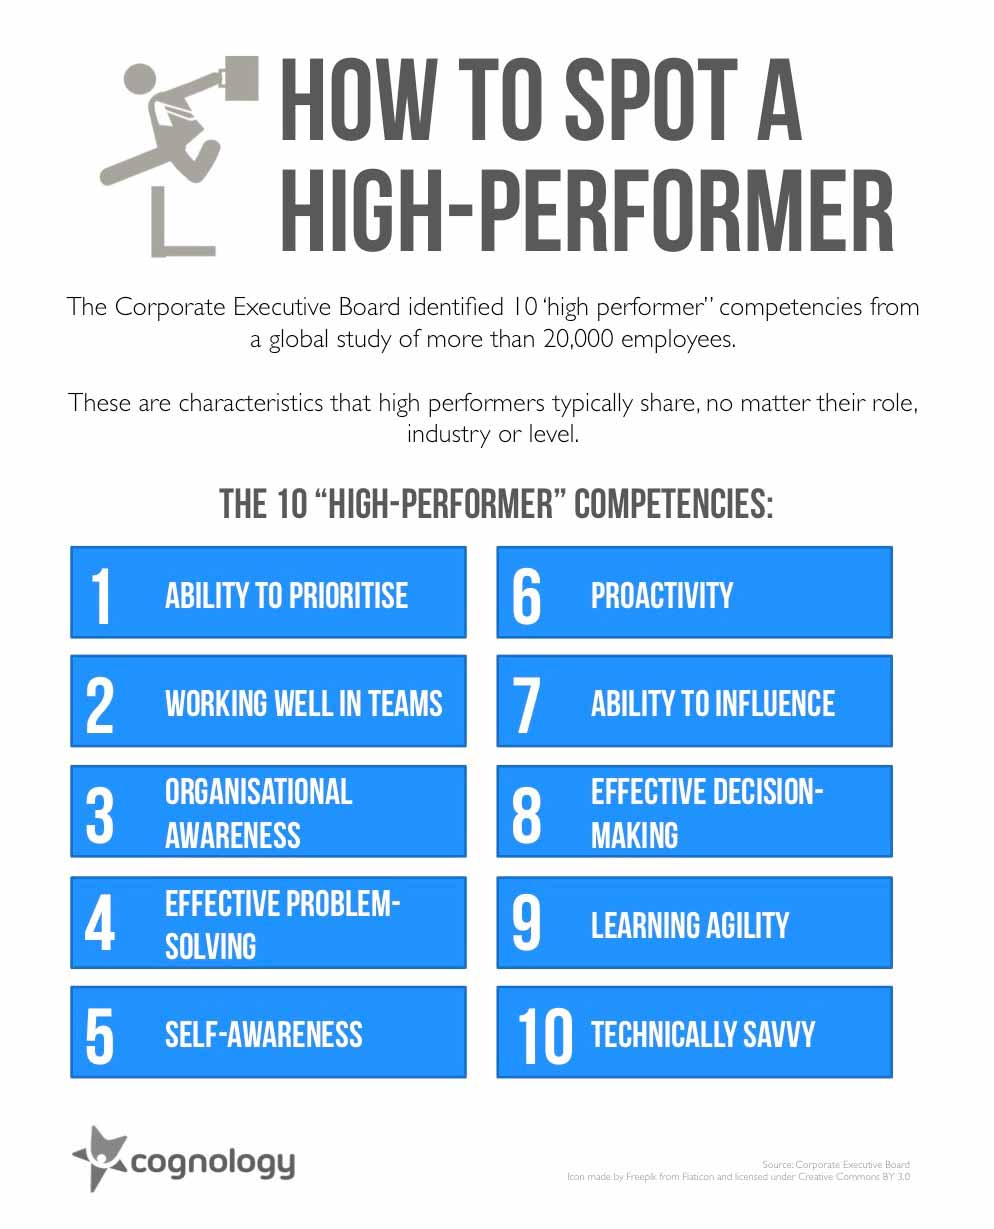 High performer competencies